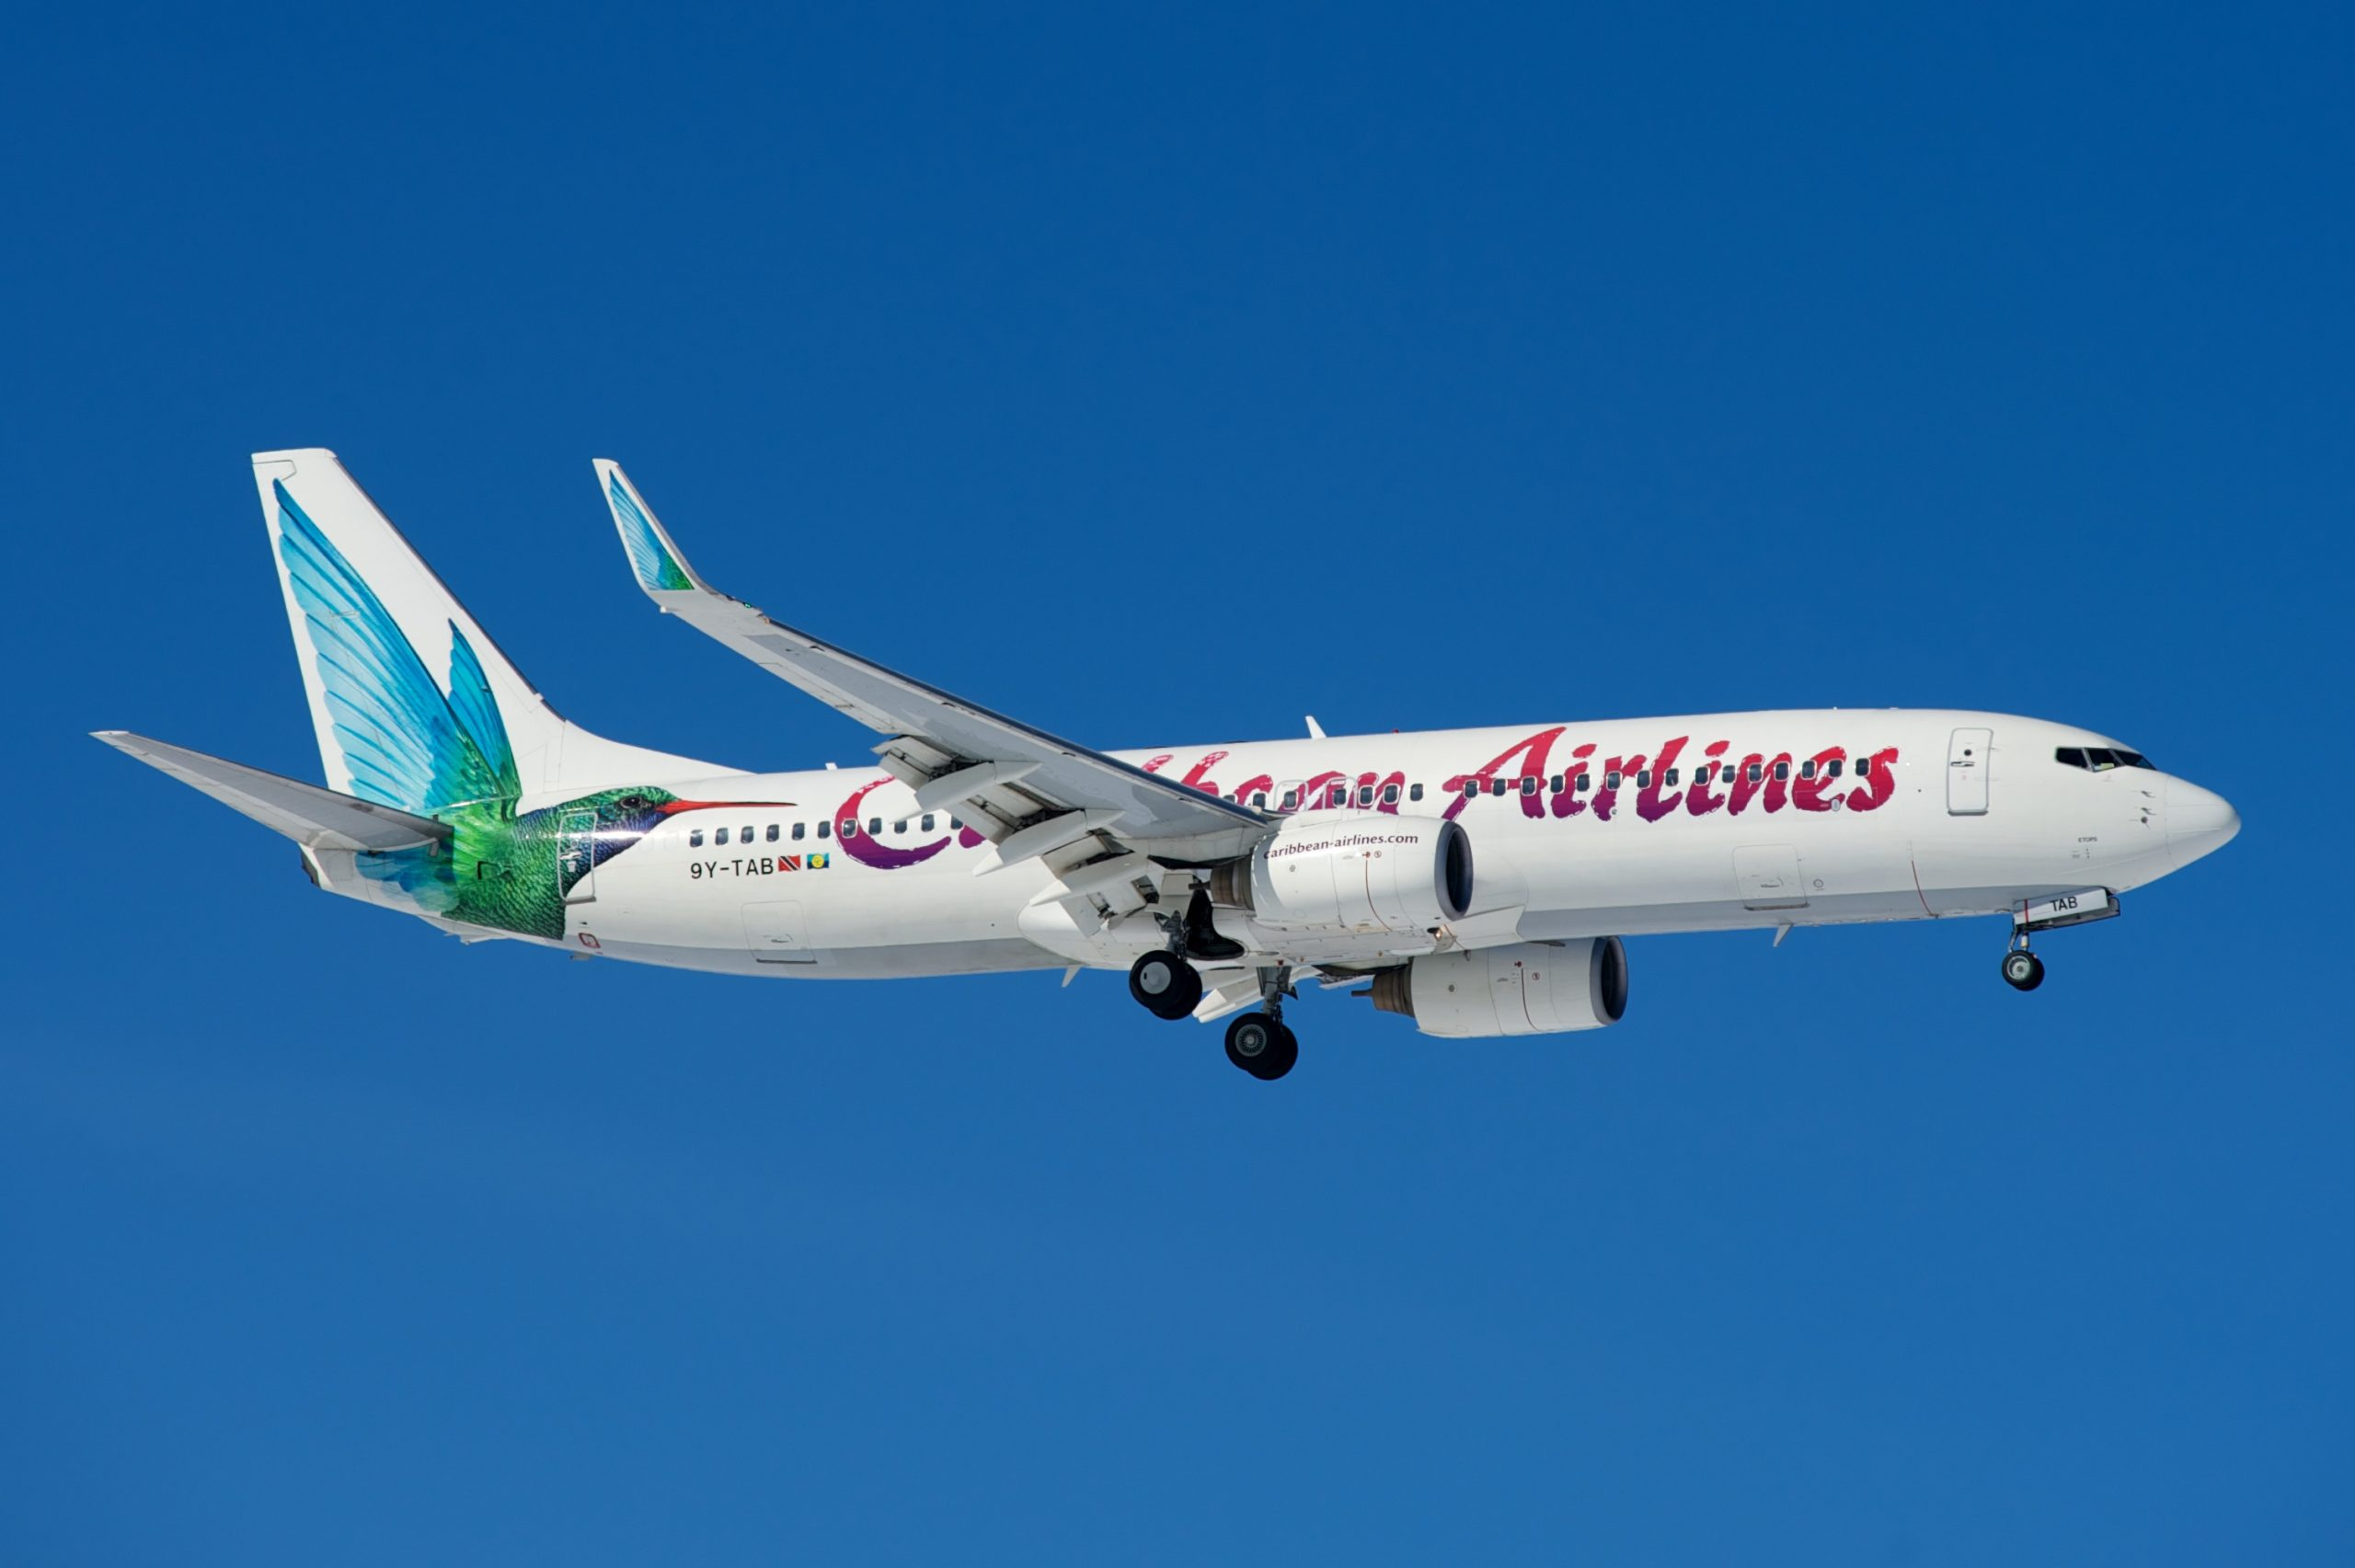 Caribbean Airlines Resumes Commercial Flights To US, Canada